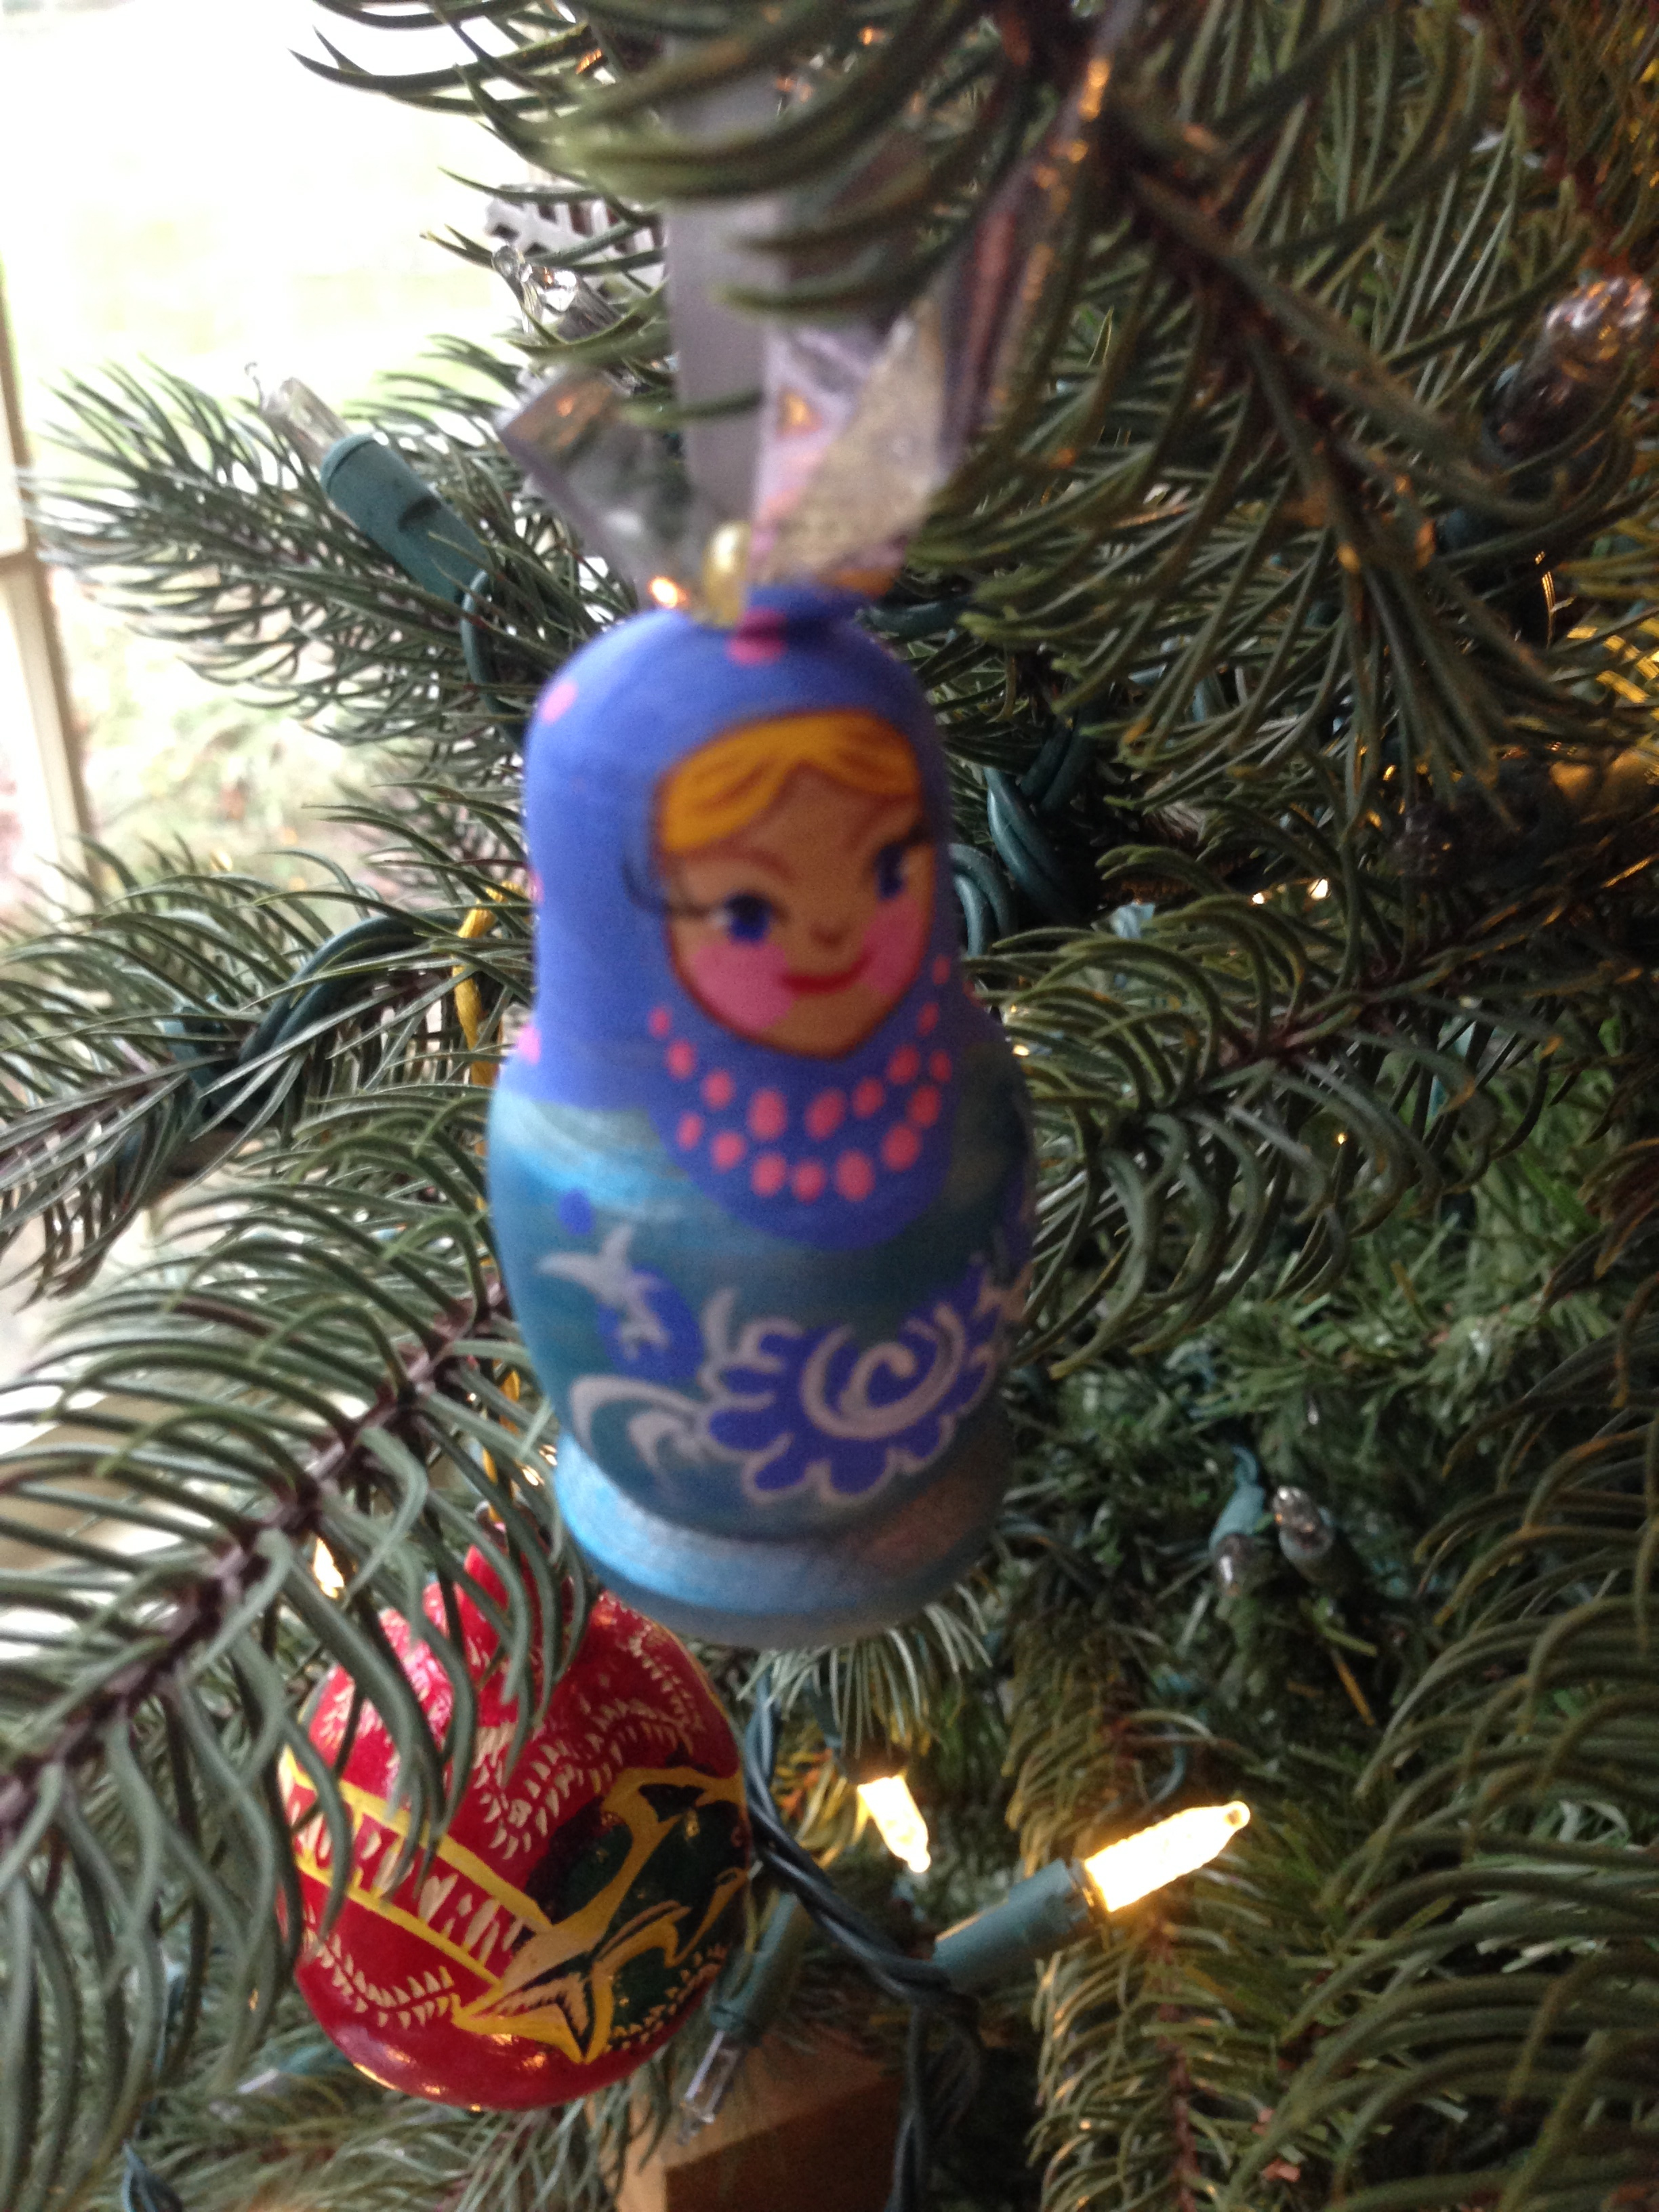 Ukrainian christmas ornaments - Celebrating Katya S Ukrainian Culture We Had A Friend Bring These Handmade Ornaments Back From A